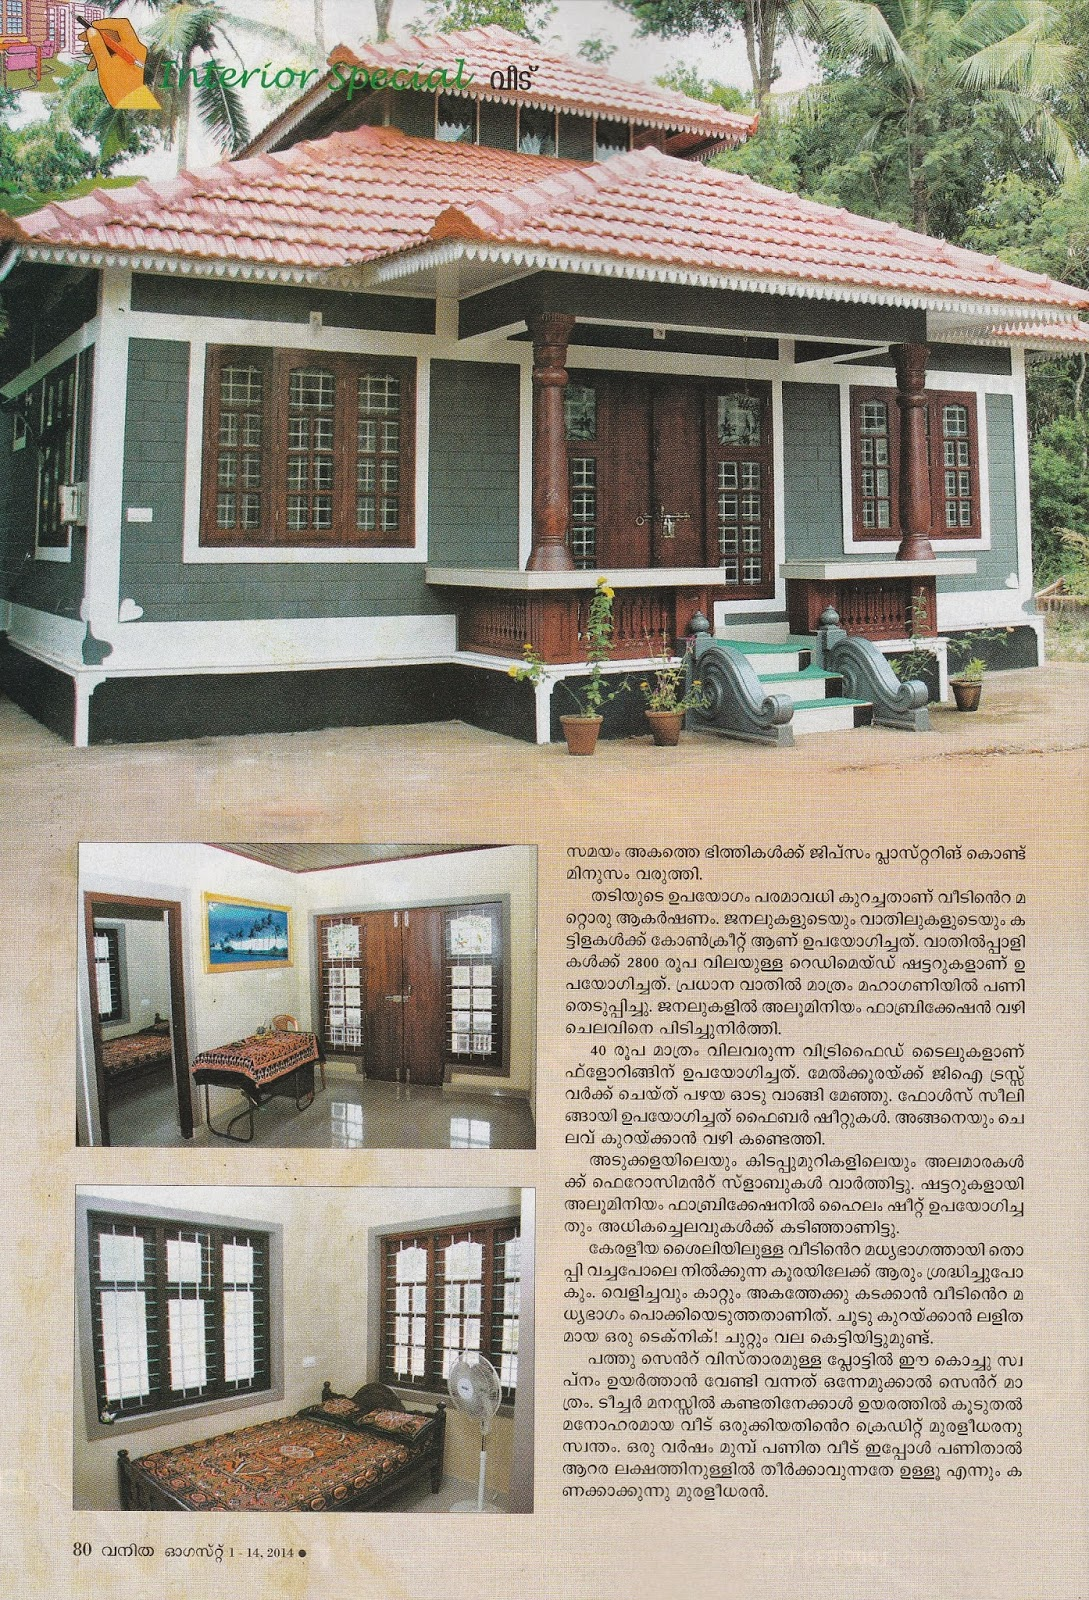 Malayala manorama veedu magazine joy studio design for Manorama veedu photos